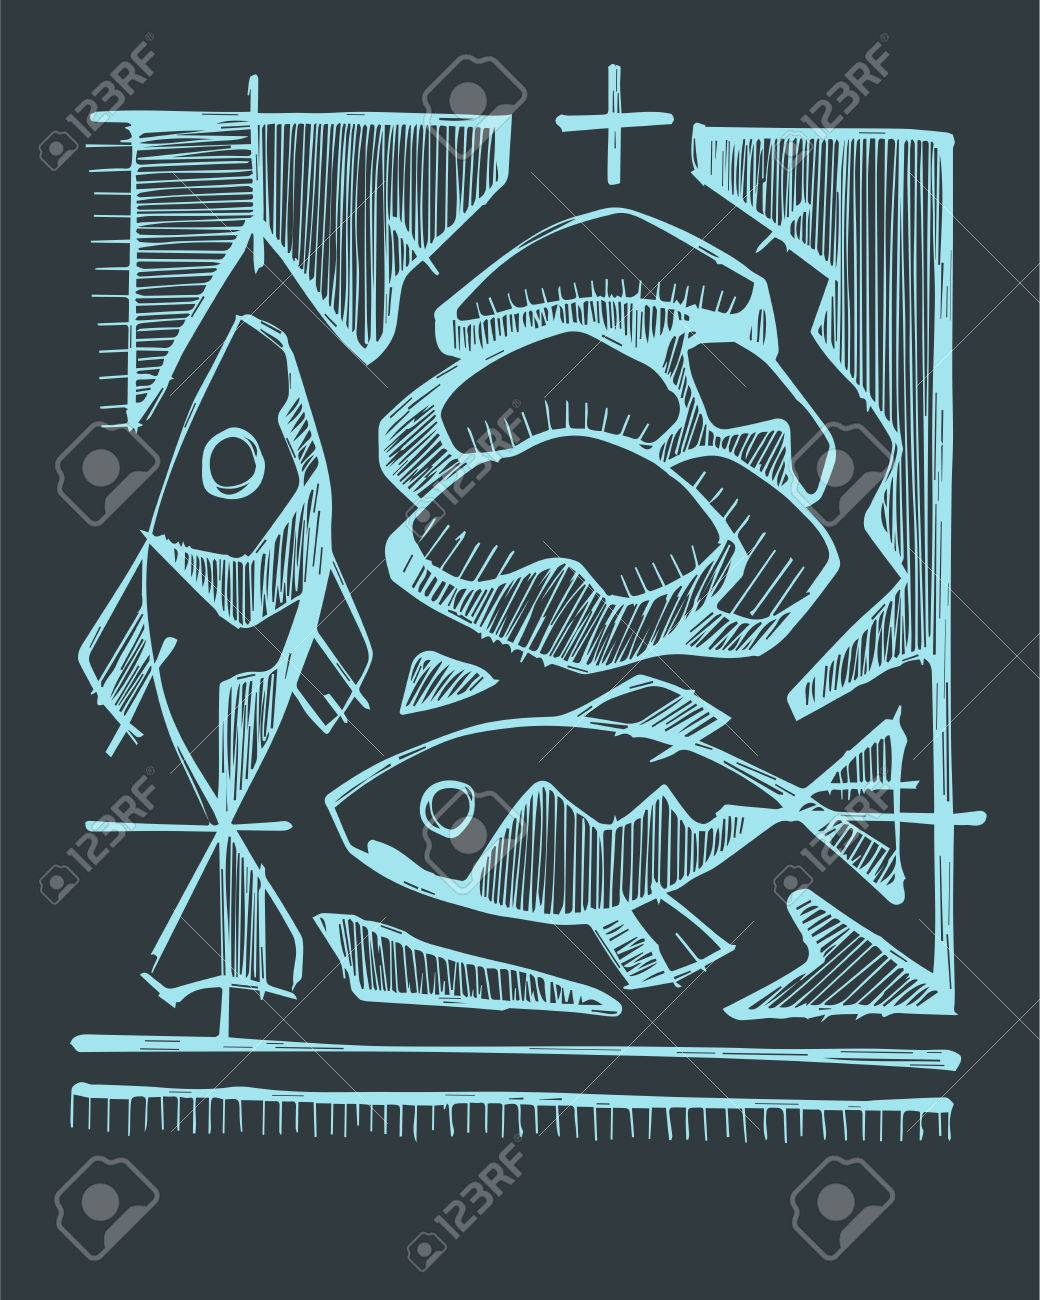 1040x1300 Hand Drawn Vector Illustration Or Drawing Of 2 Fishes And 5 Breads